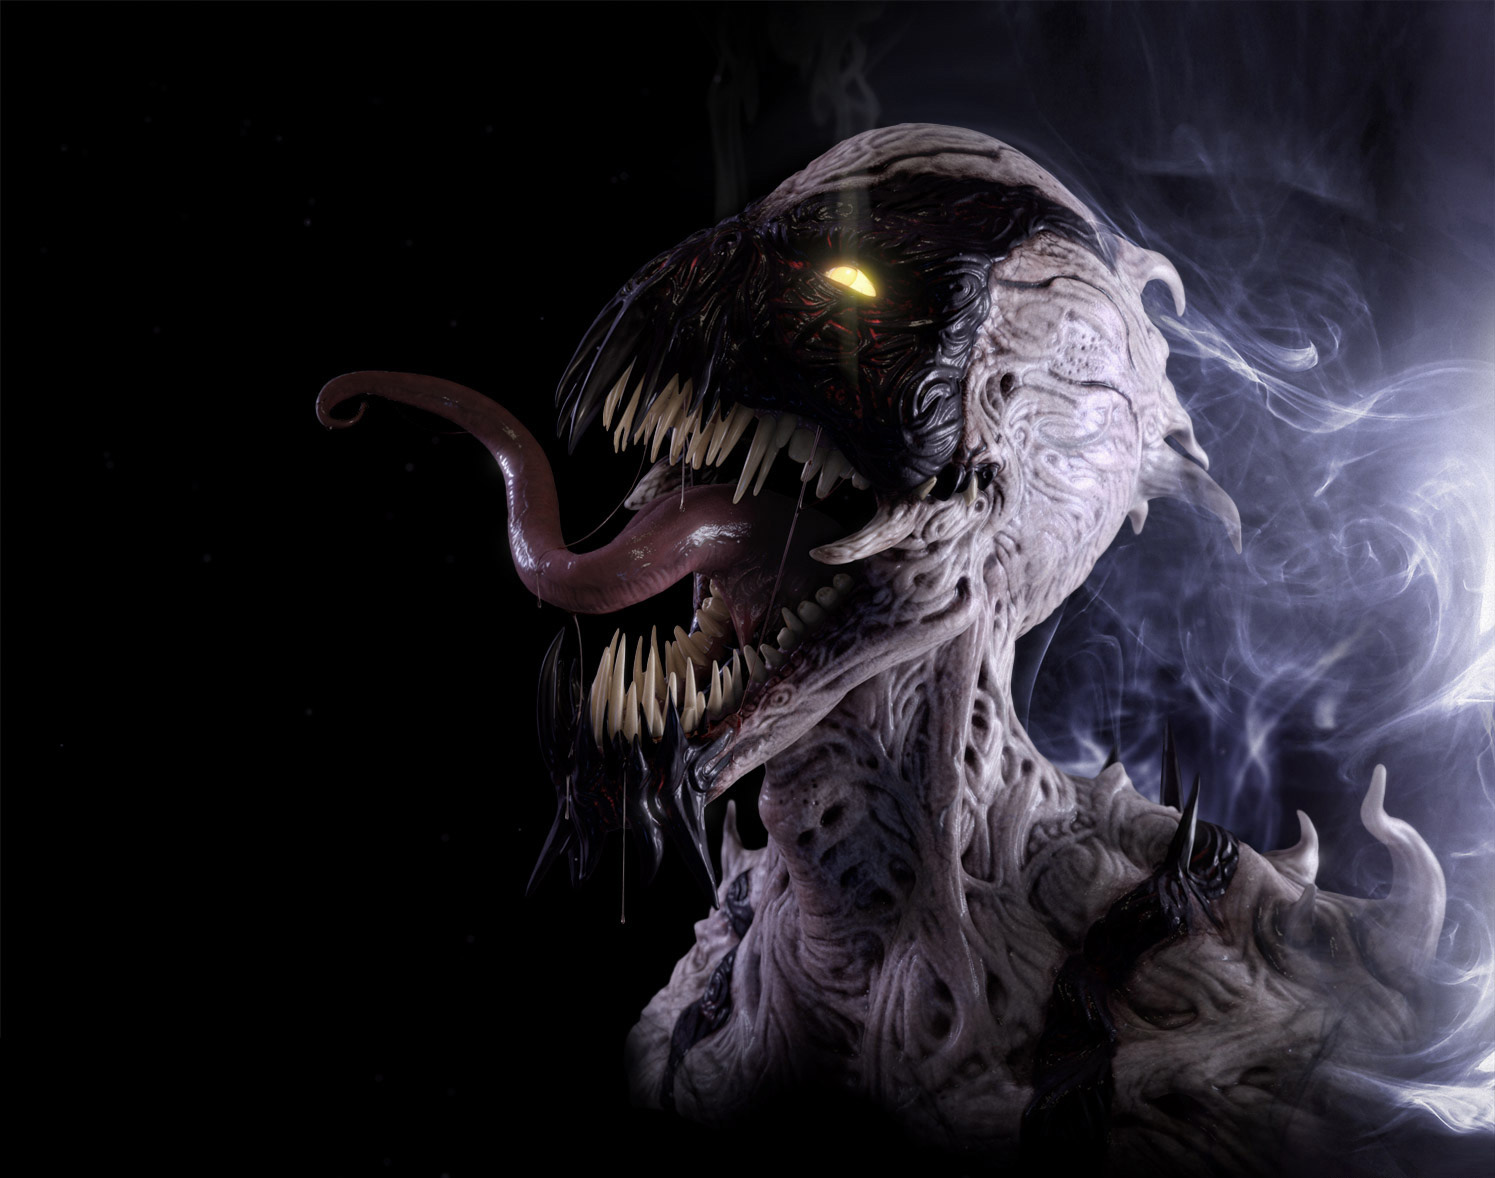 Anti-Venom Wallpaper and Background Image | 1495x1178 | ID:184873 - Wallpaper Abyss